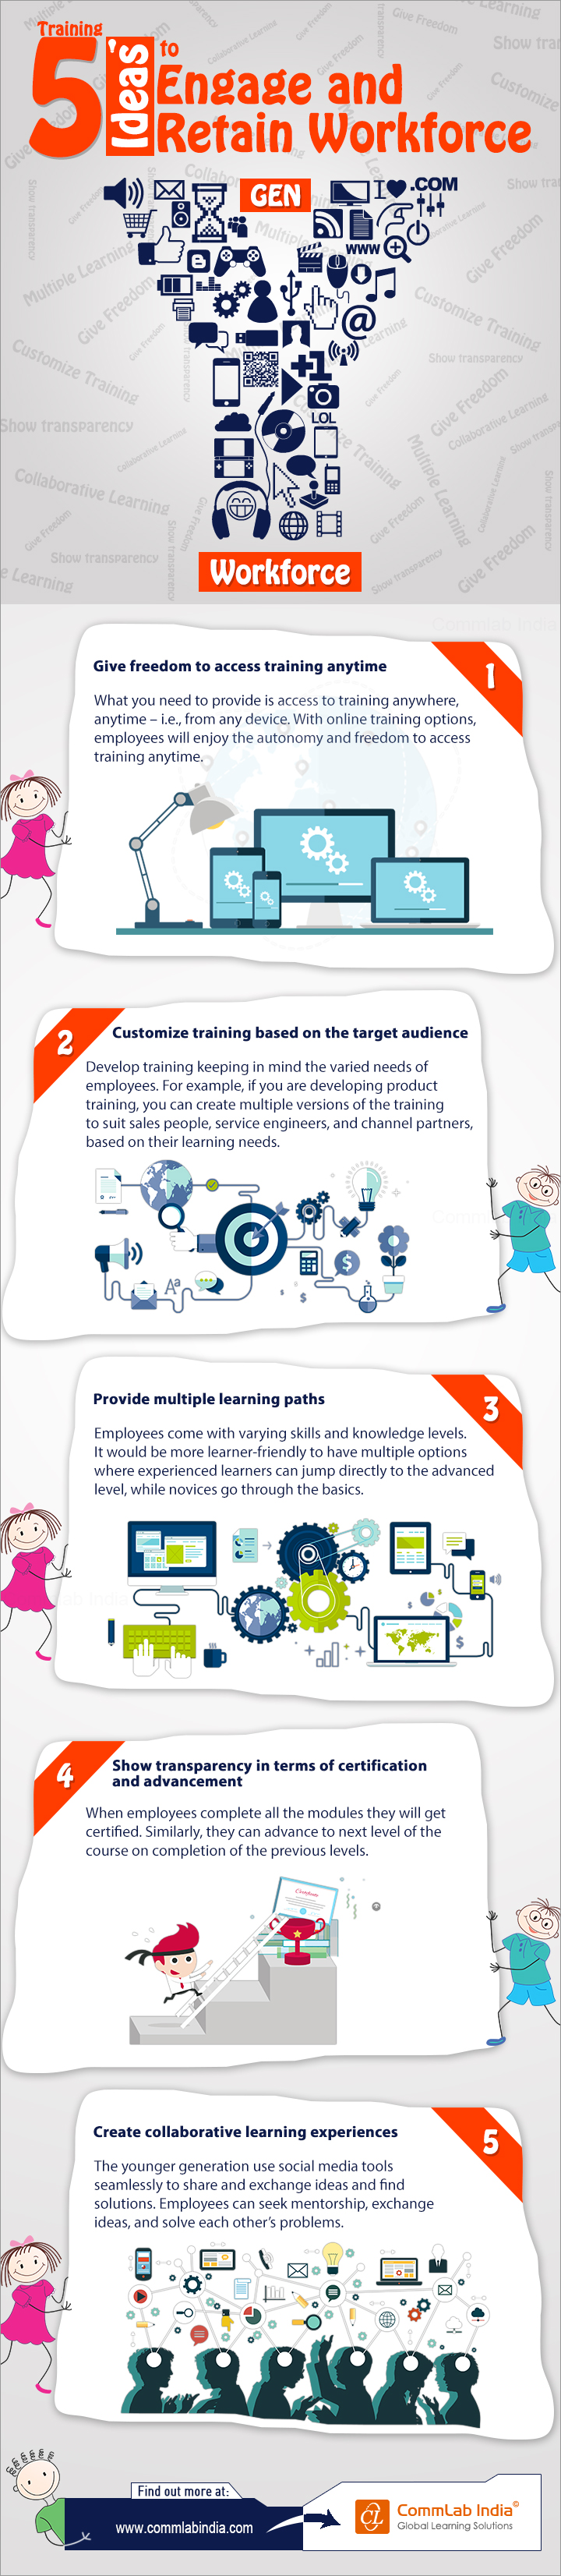 5 Training Ideas to Engage and Retain Gen-Y Workforce [Infographic]